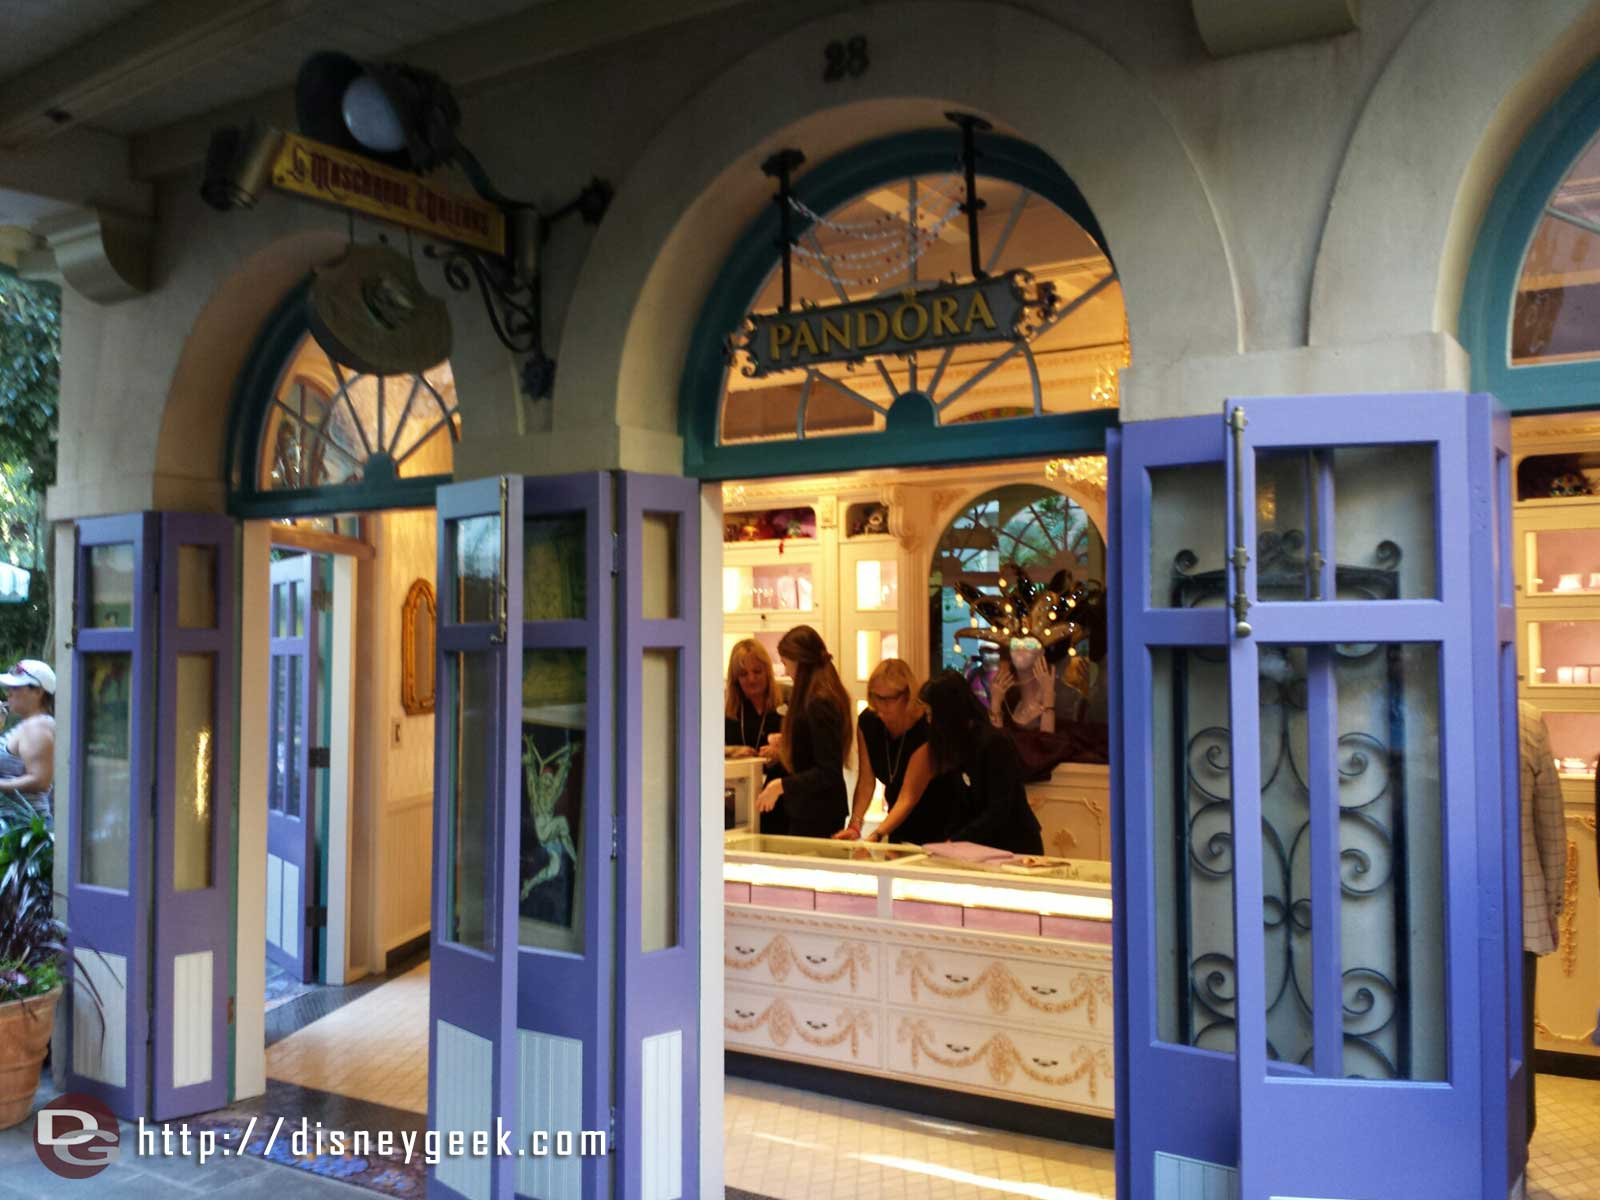 La Mascarade D Orleans Has Reopened As A Pandora Store